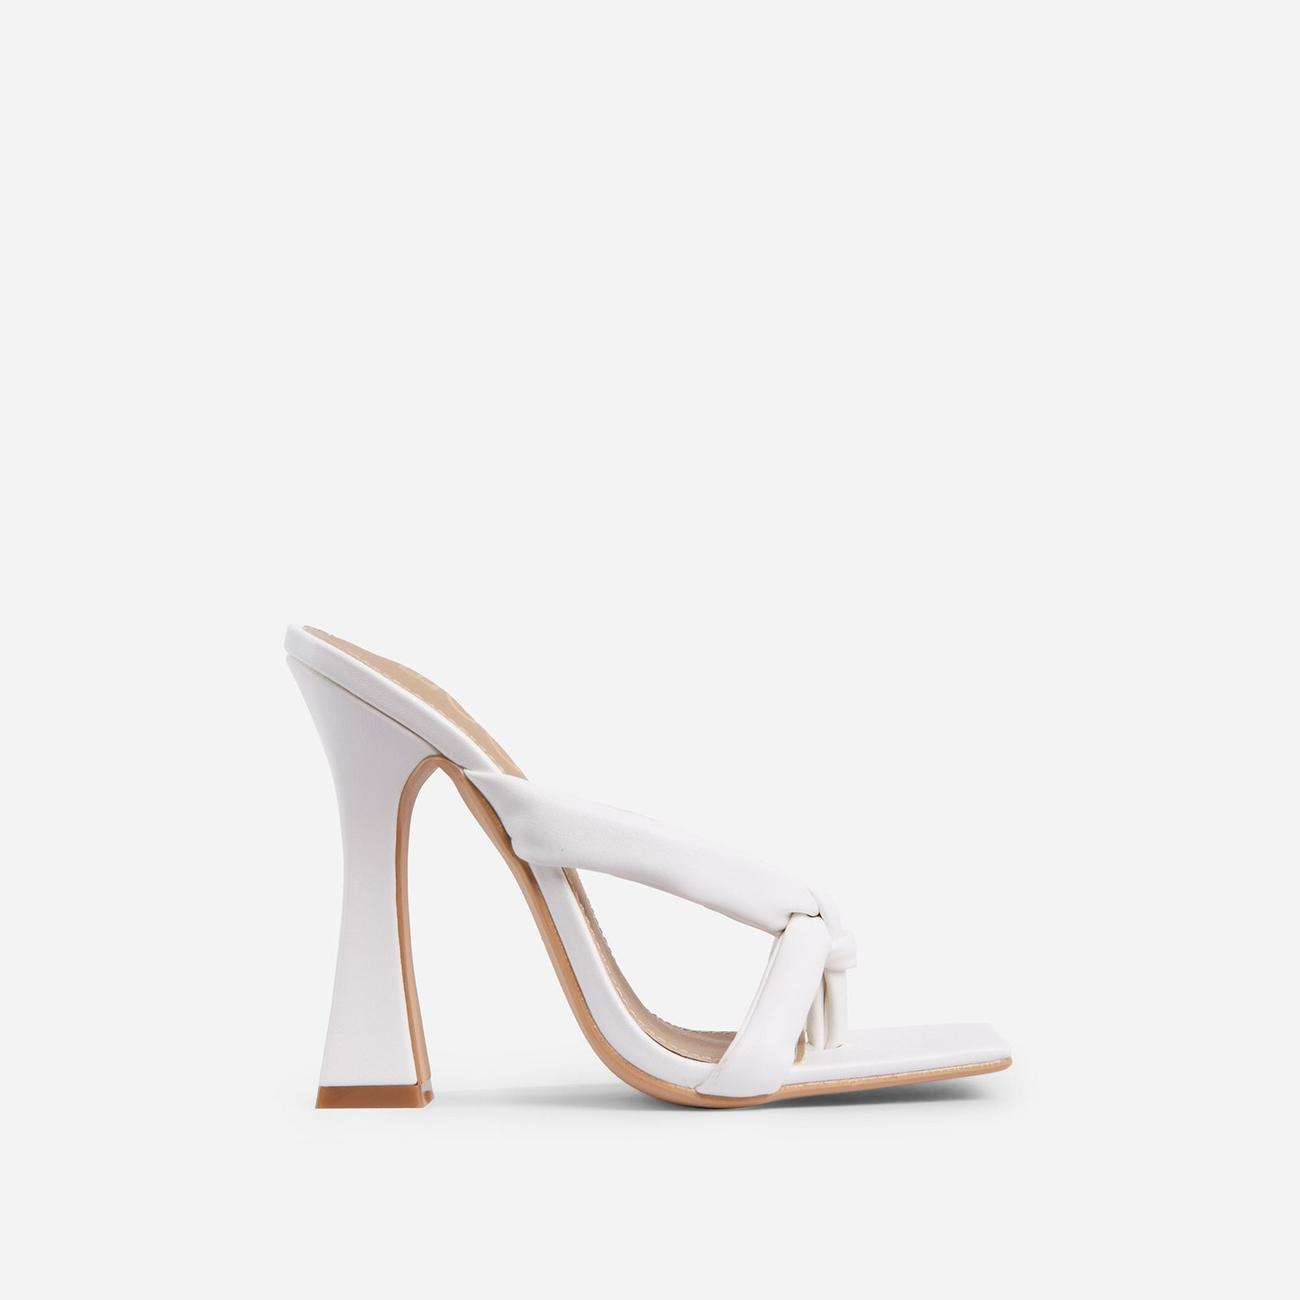 Loyal Padded Cross Strap Square Toe Heel Mule In White Faux Leather Image 3